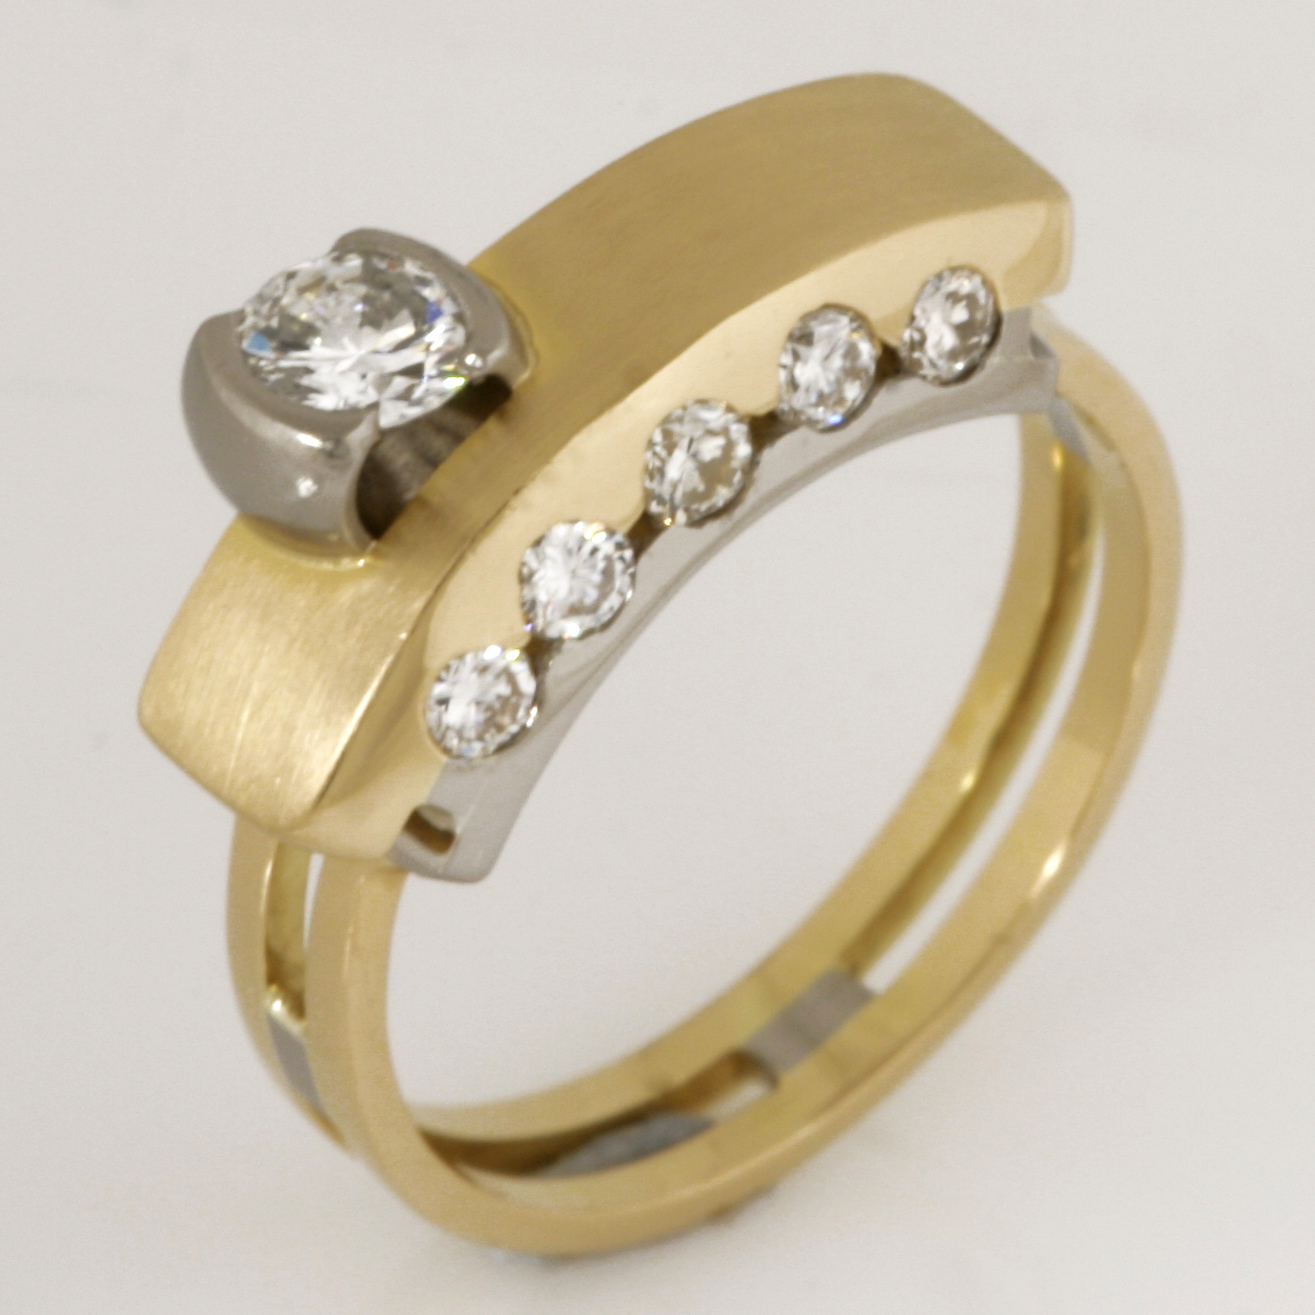 Handmade ladies yellow gold diamond 'Archie' style ring